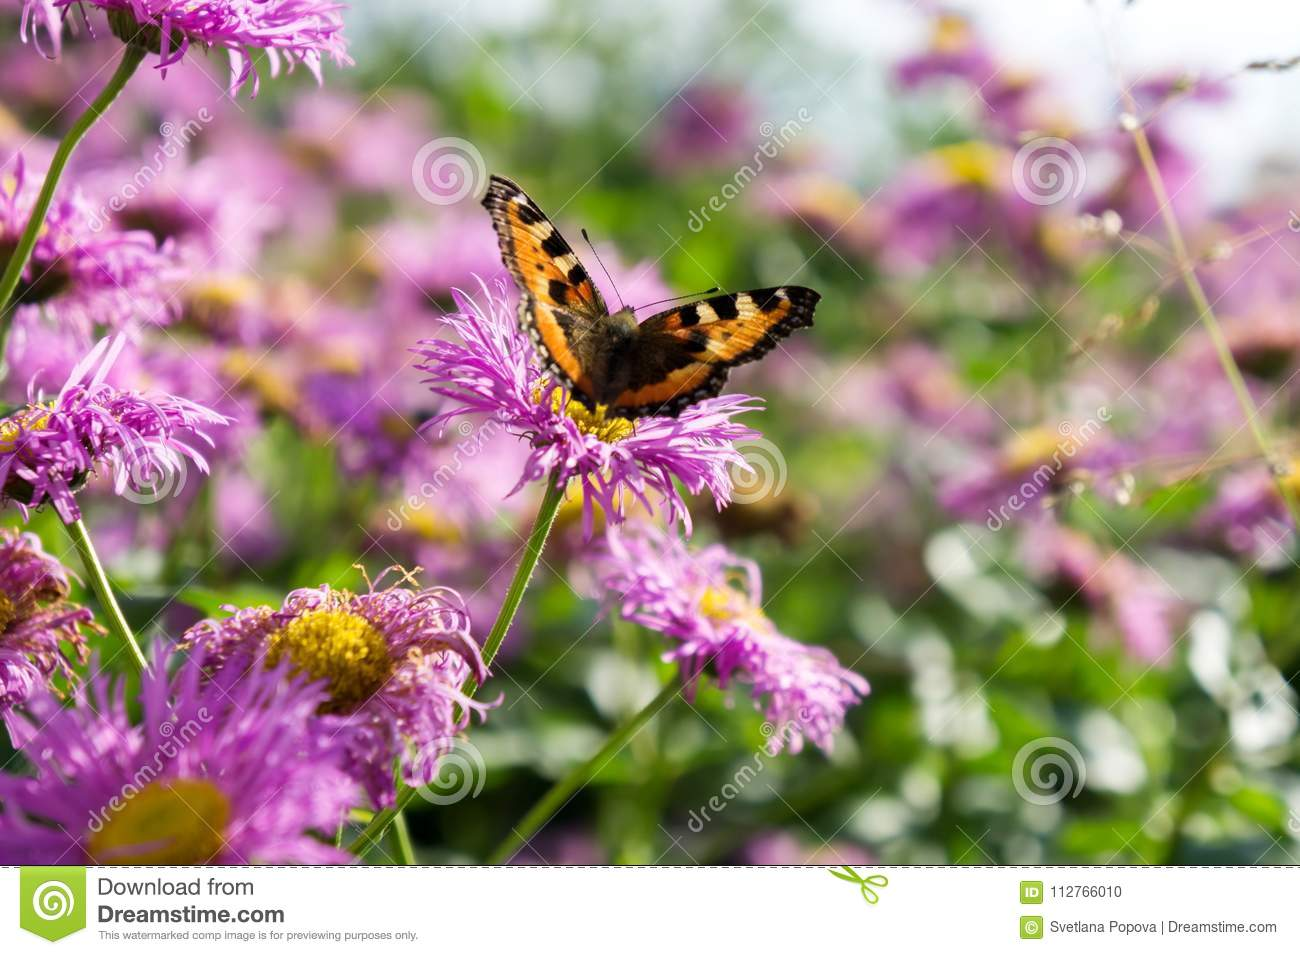 Butterfly Urticaria On The Pink Flower Of Perennial Asters In Early